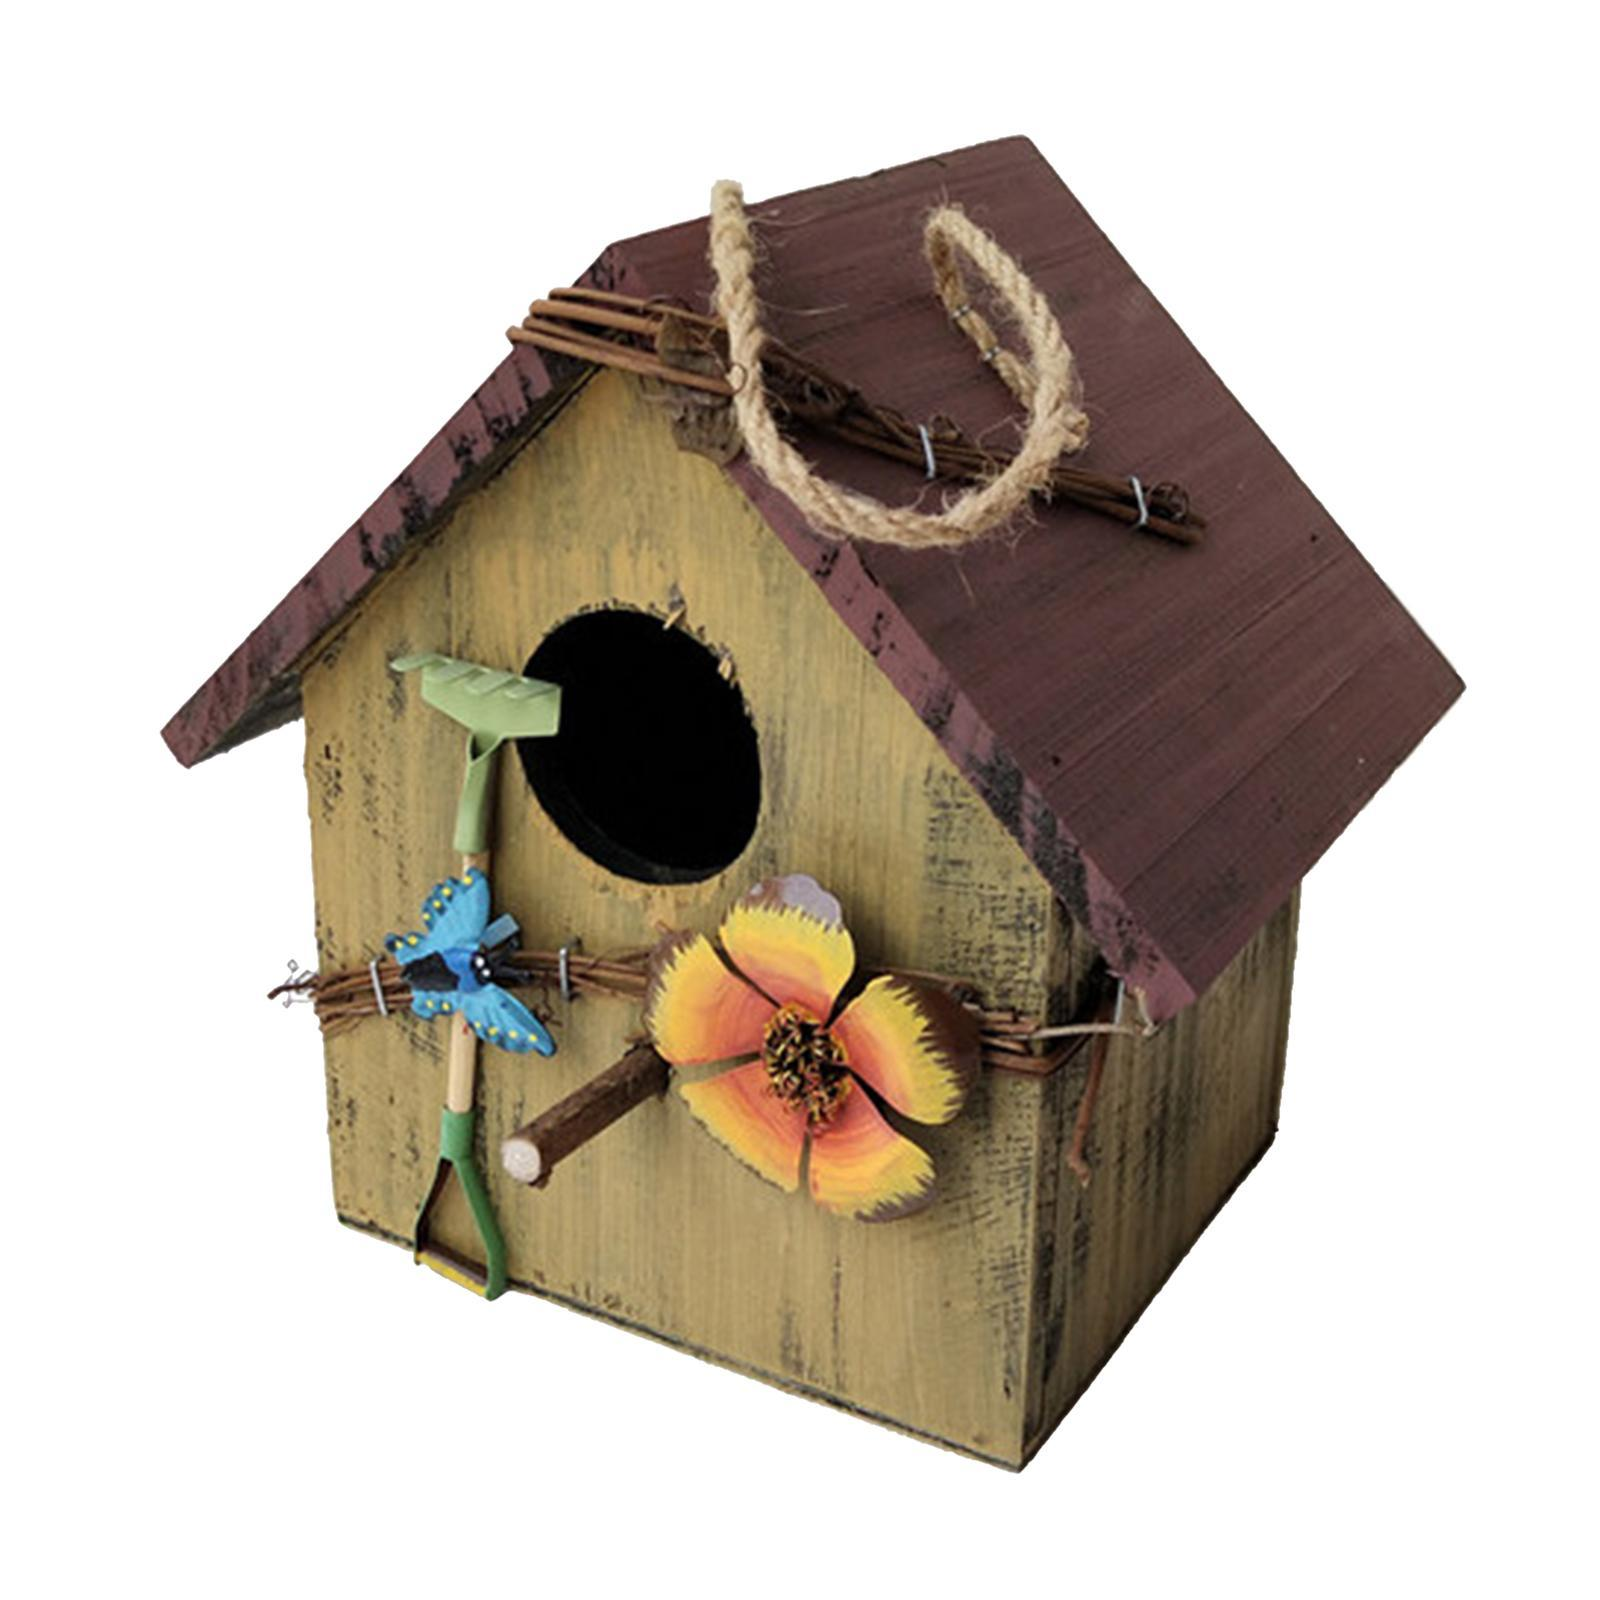 thumbnail 7 - Antique Hand Painted Wood Birdhouse Decorative Outdoor Bird House Garden